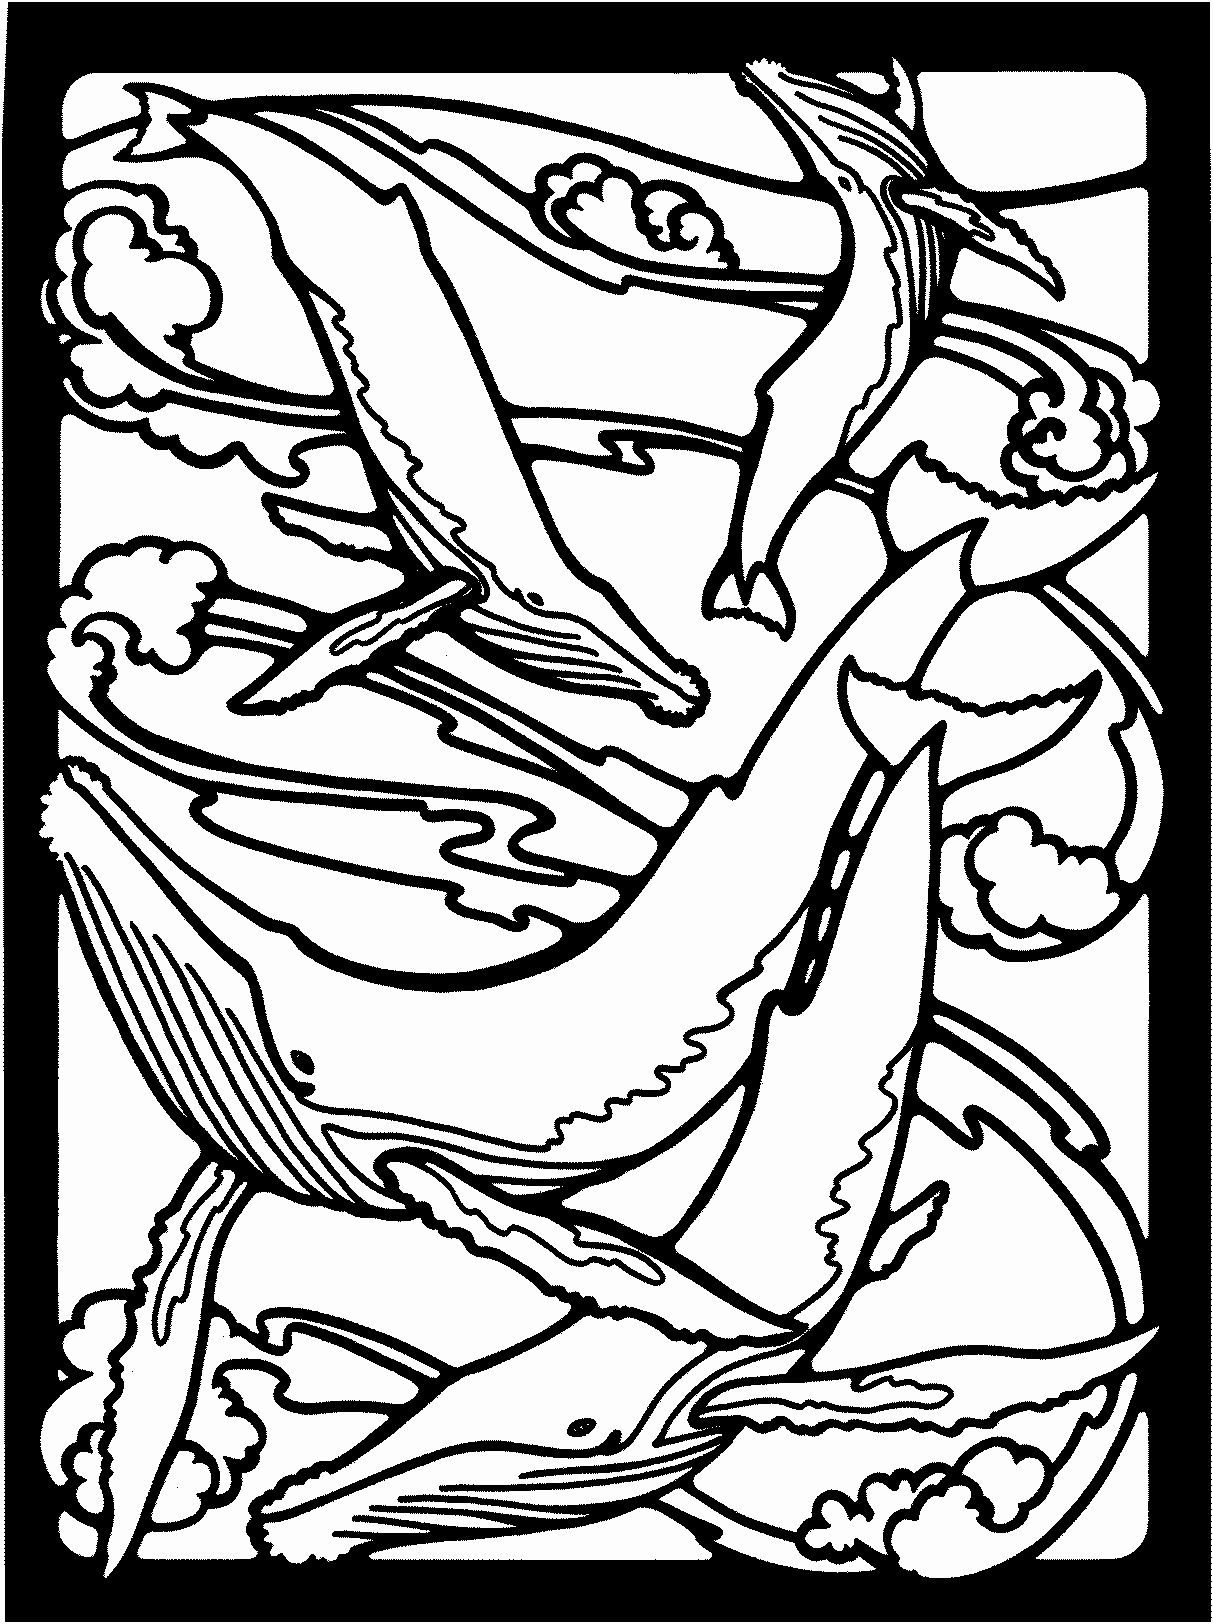 Orca Whale Coloring Page Beautiful Whale Coloring Pages